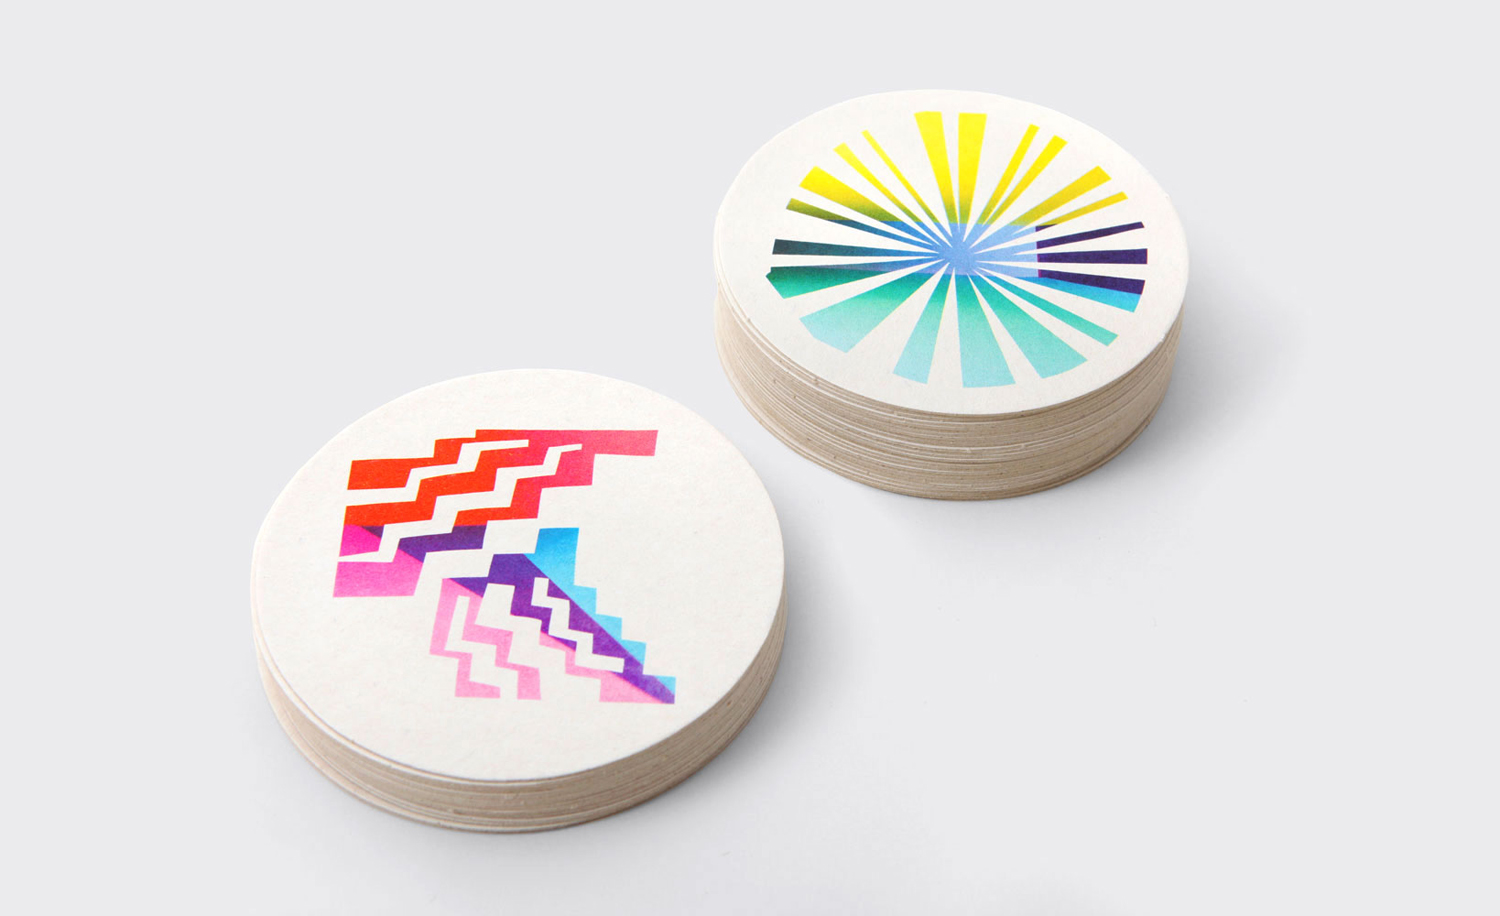 Brand identity and illustrated coasters by New York design studio Triboro for Brooklyn cafe and bar Sauvage